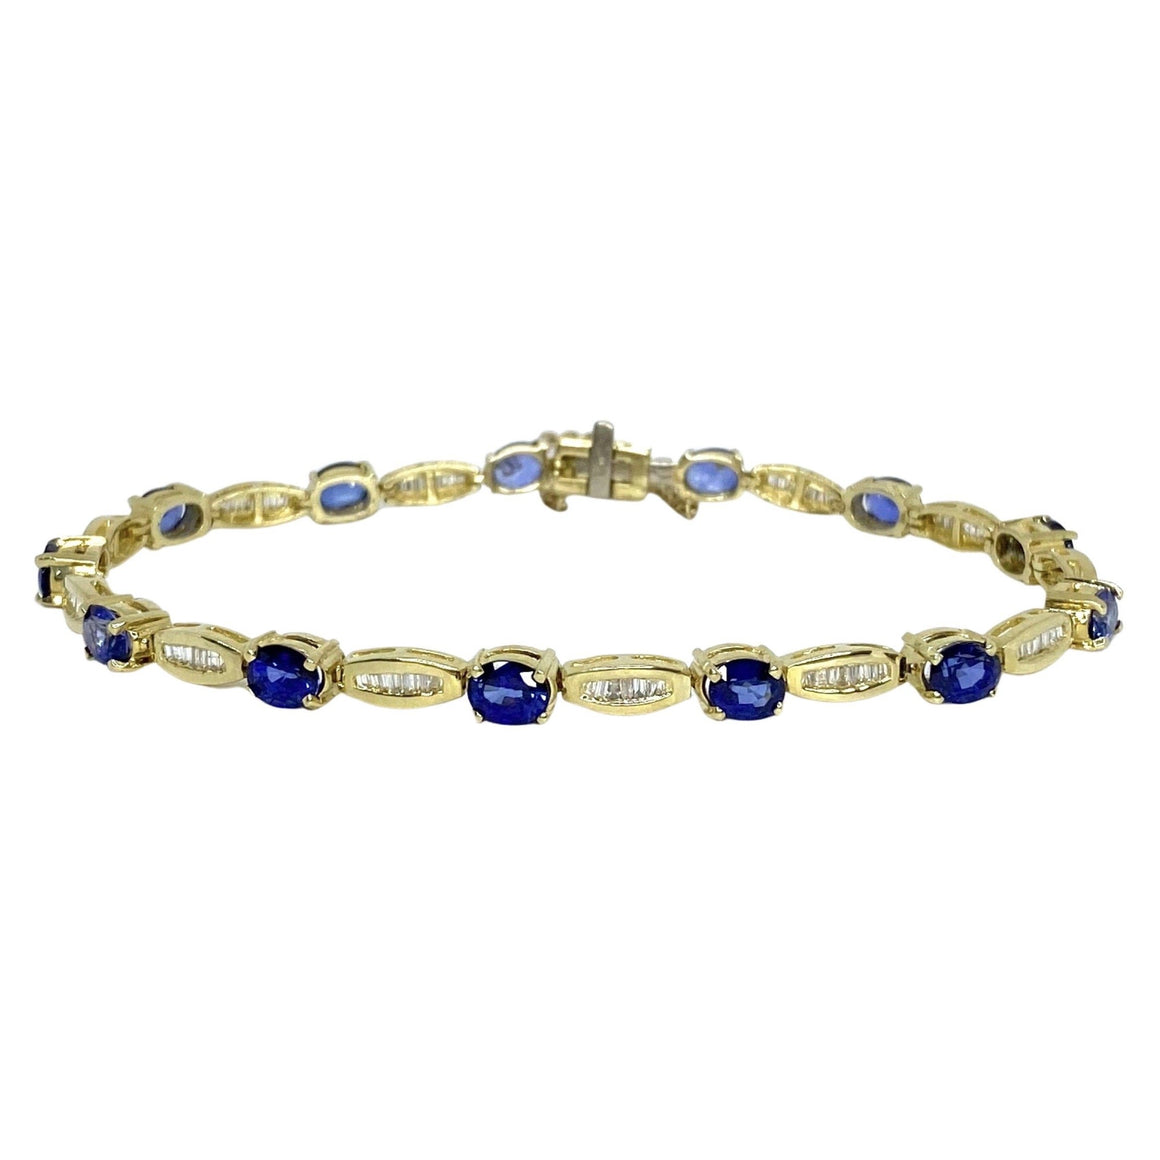 Vintage 14K Yellow Gold Sapphire and Diamond Bracelet